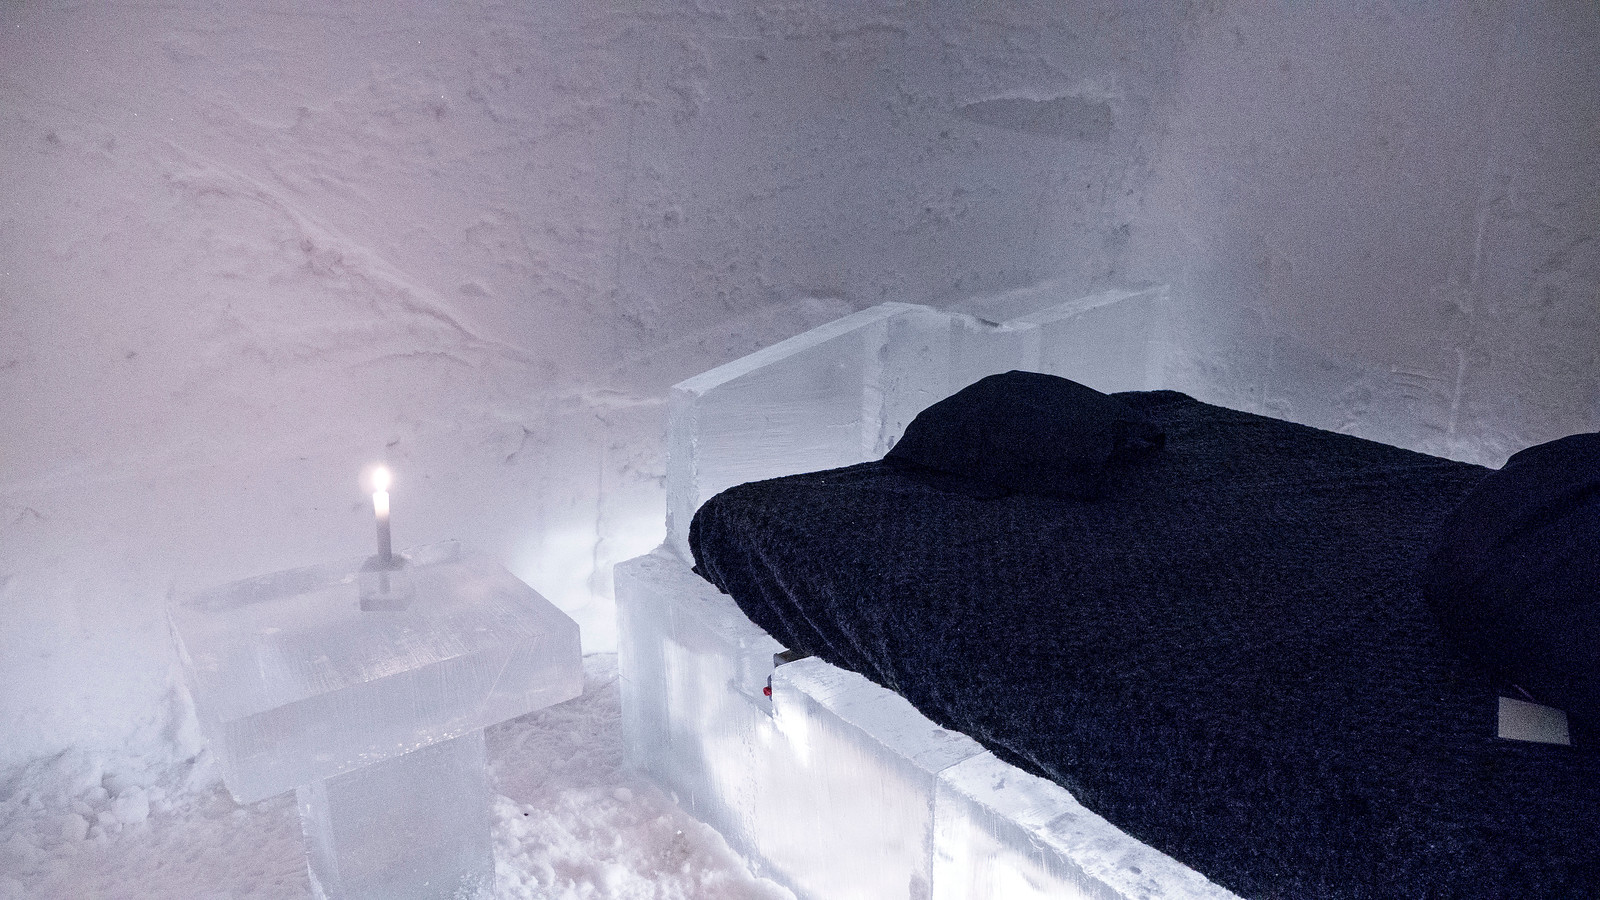 Ice Hotel Quebec: An Insider's Guide to Surviving the Night - Our ice room